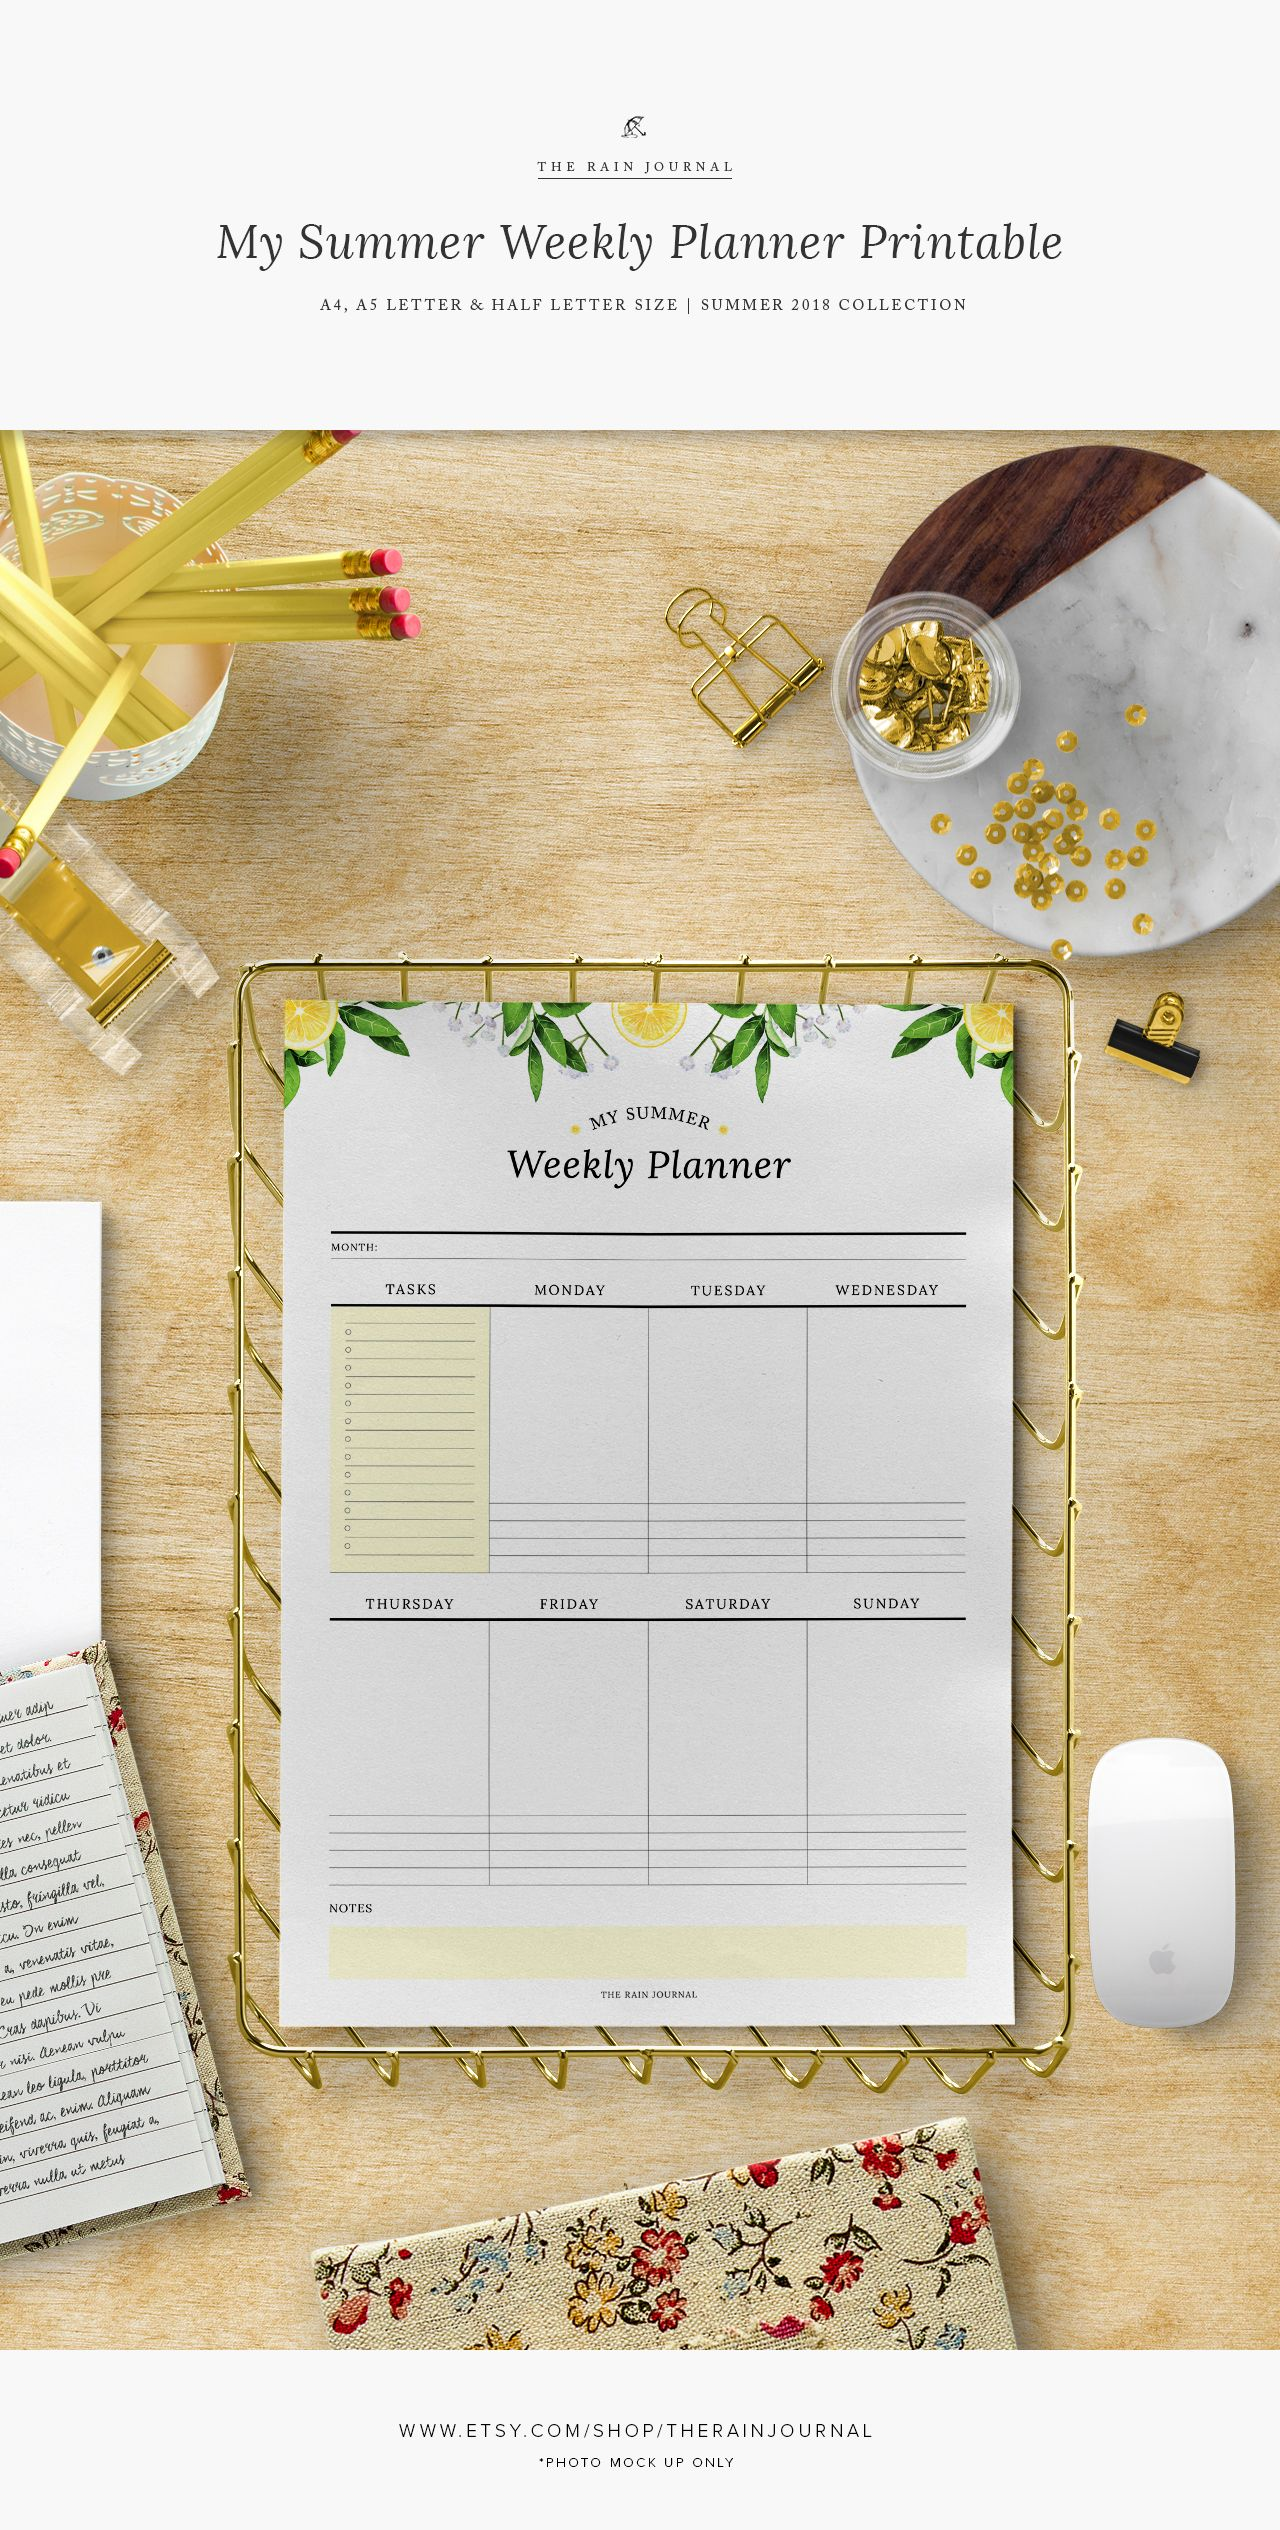 My Summer Weekly Planner A5filofax A5weeklyplanner Weeklyplanner Printableweekly Weeklywallplanner Wallplanner Deskplanner Kikkik Midori Plannerinser